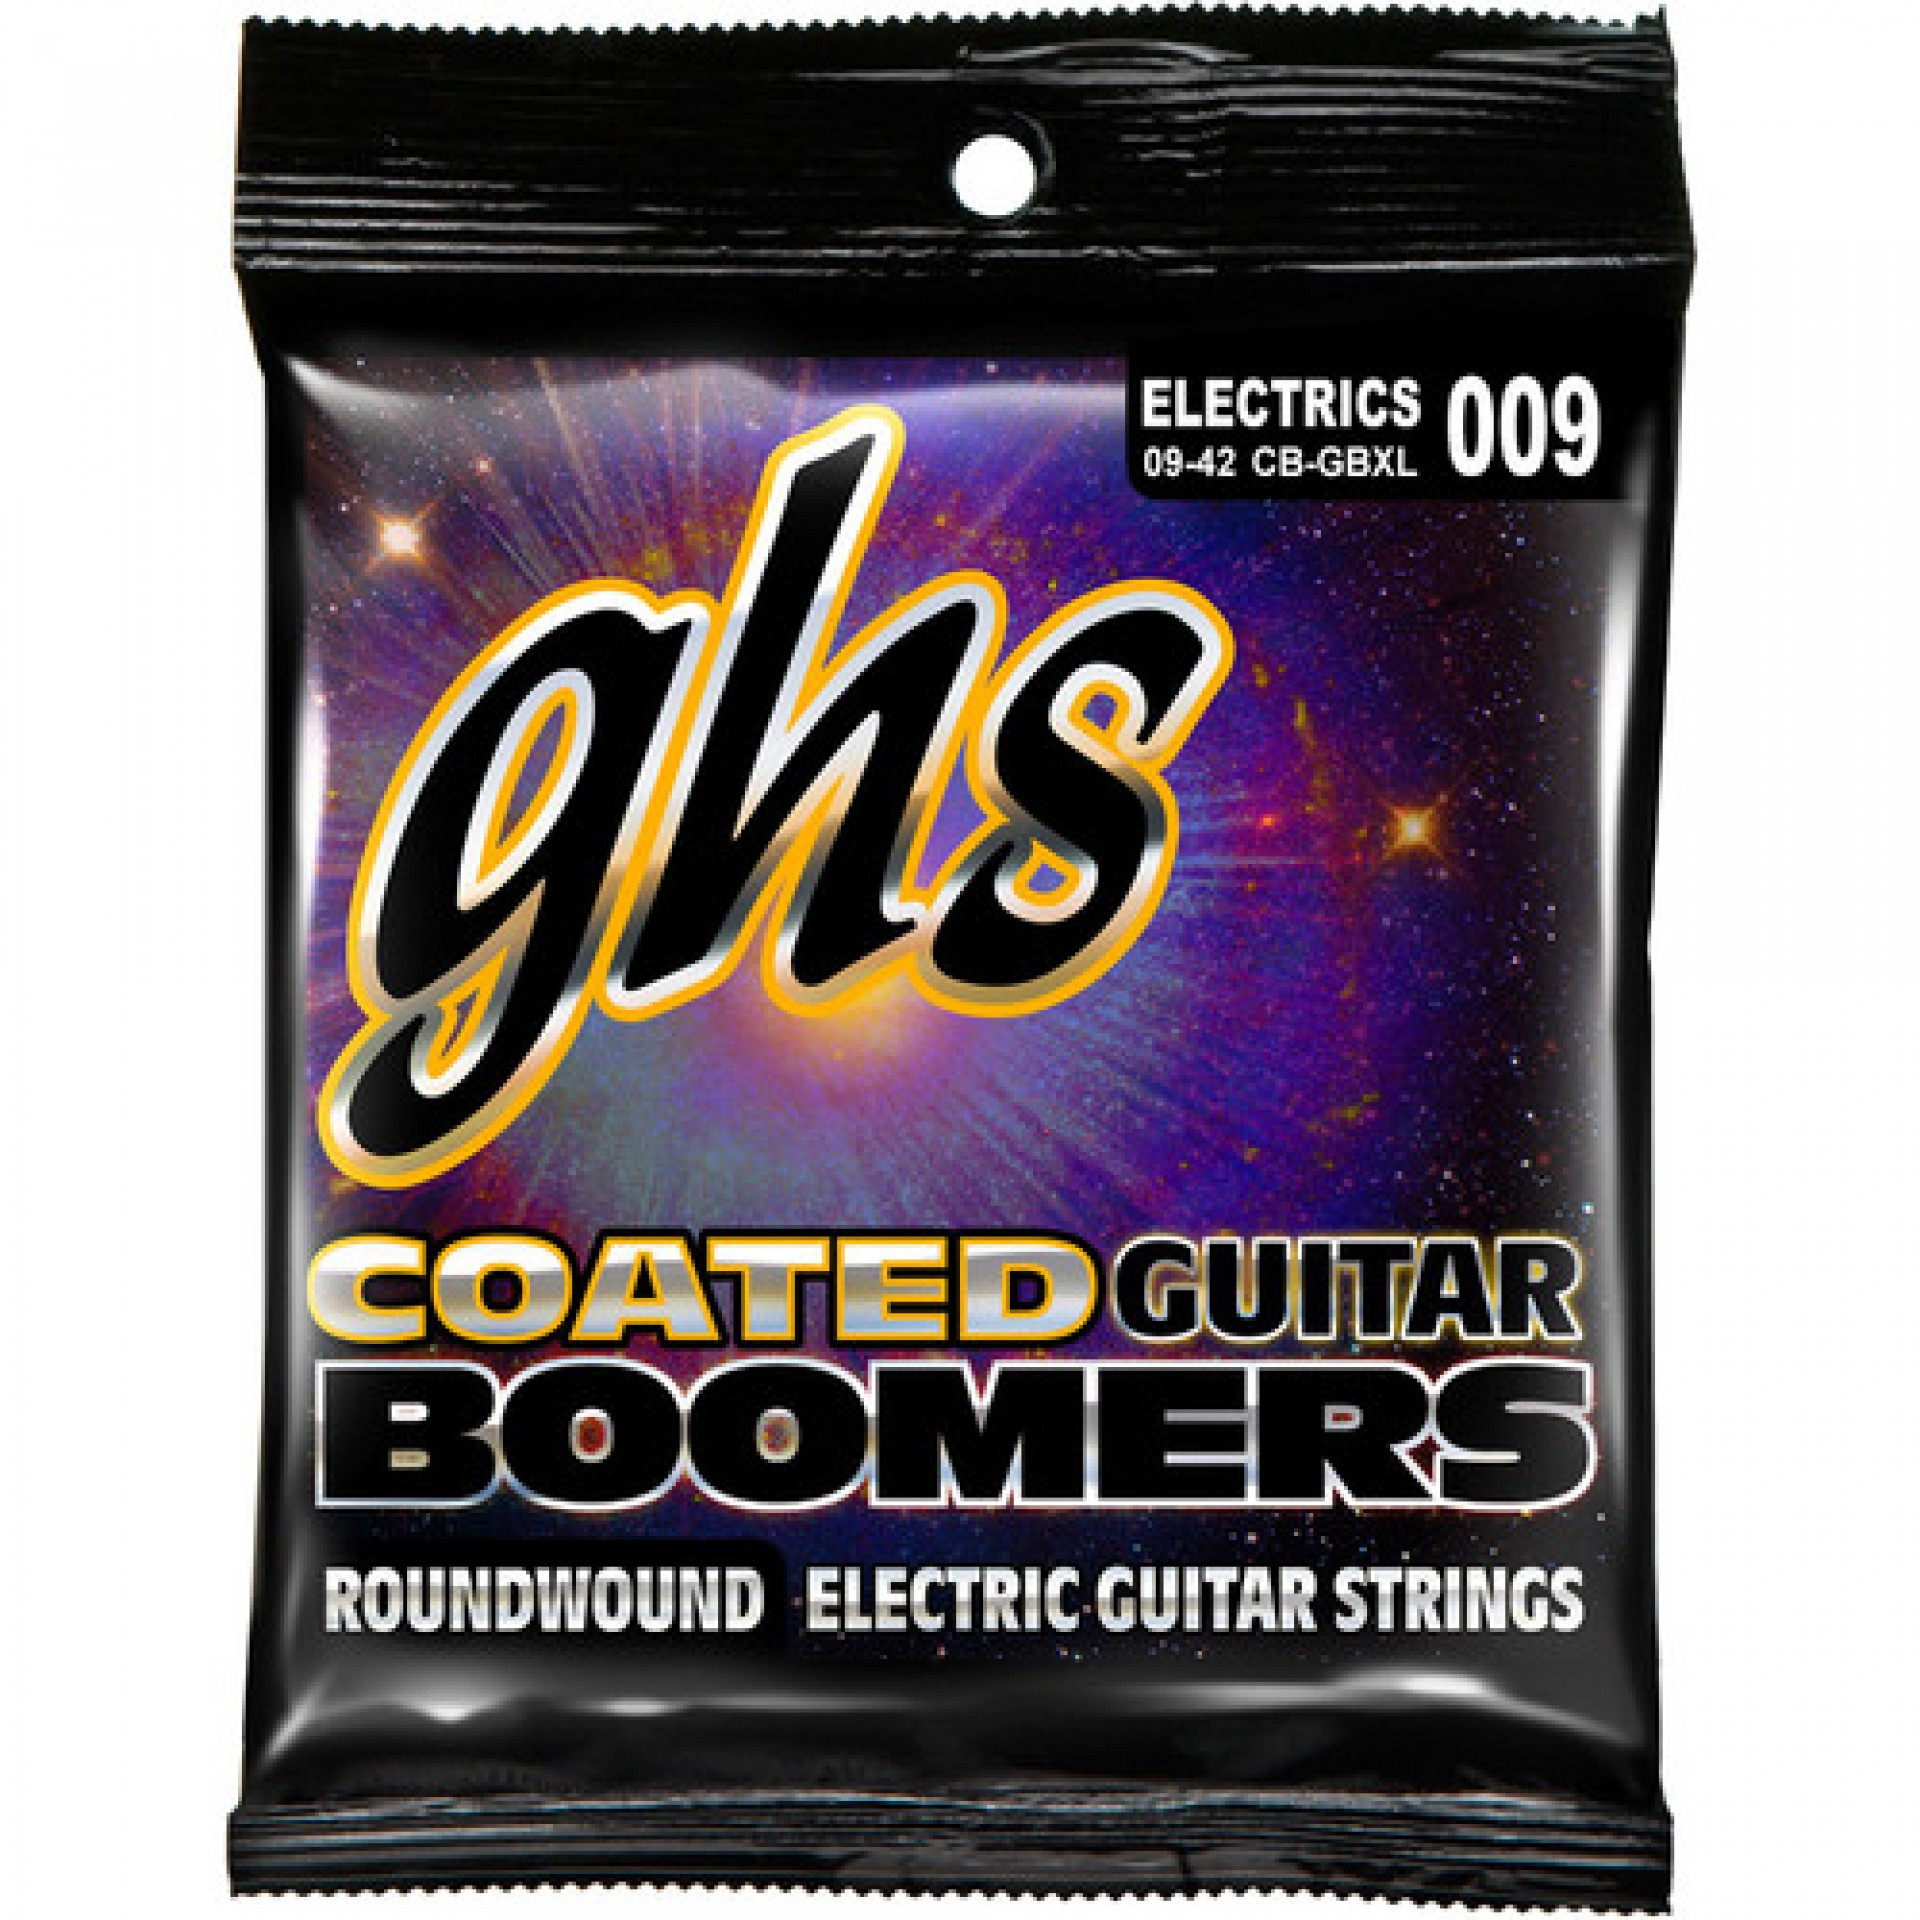 GHS CB-GBXL Extra Light Coated Boomers Roundwound Electric Guitar Strings (6-String Set, 10 - 46)